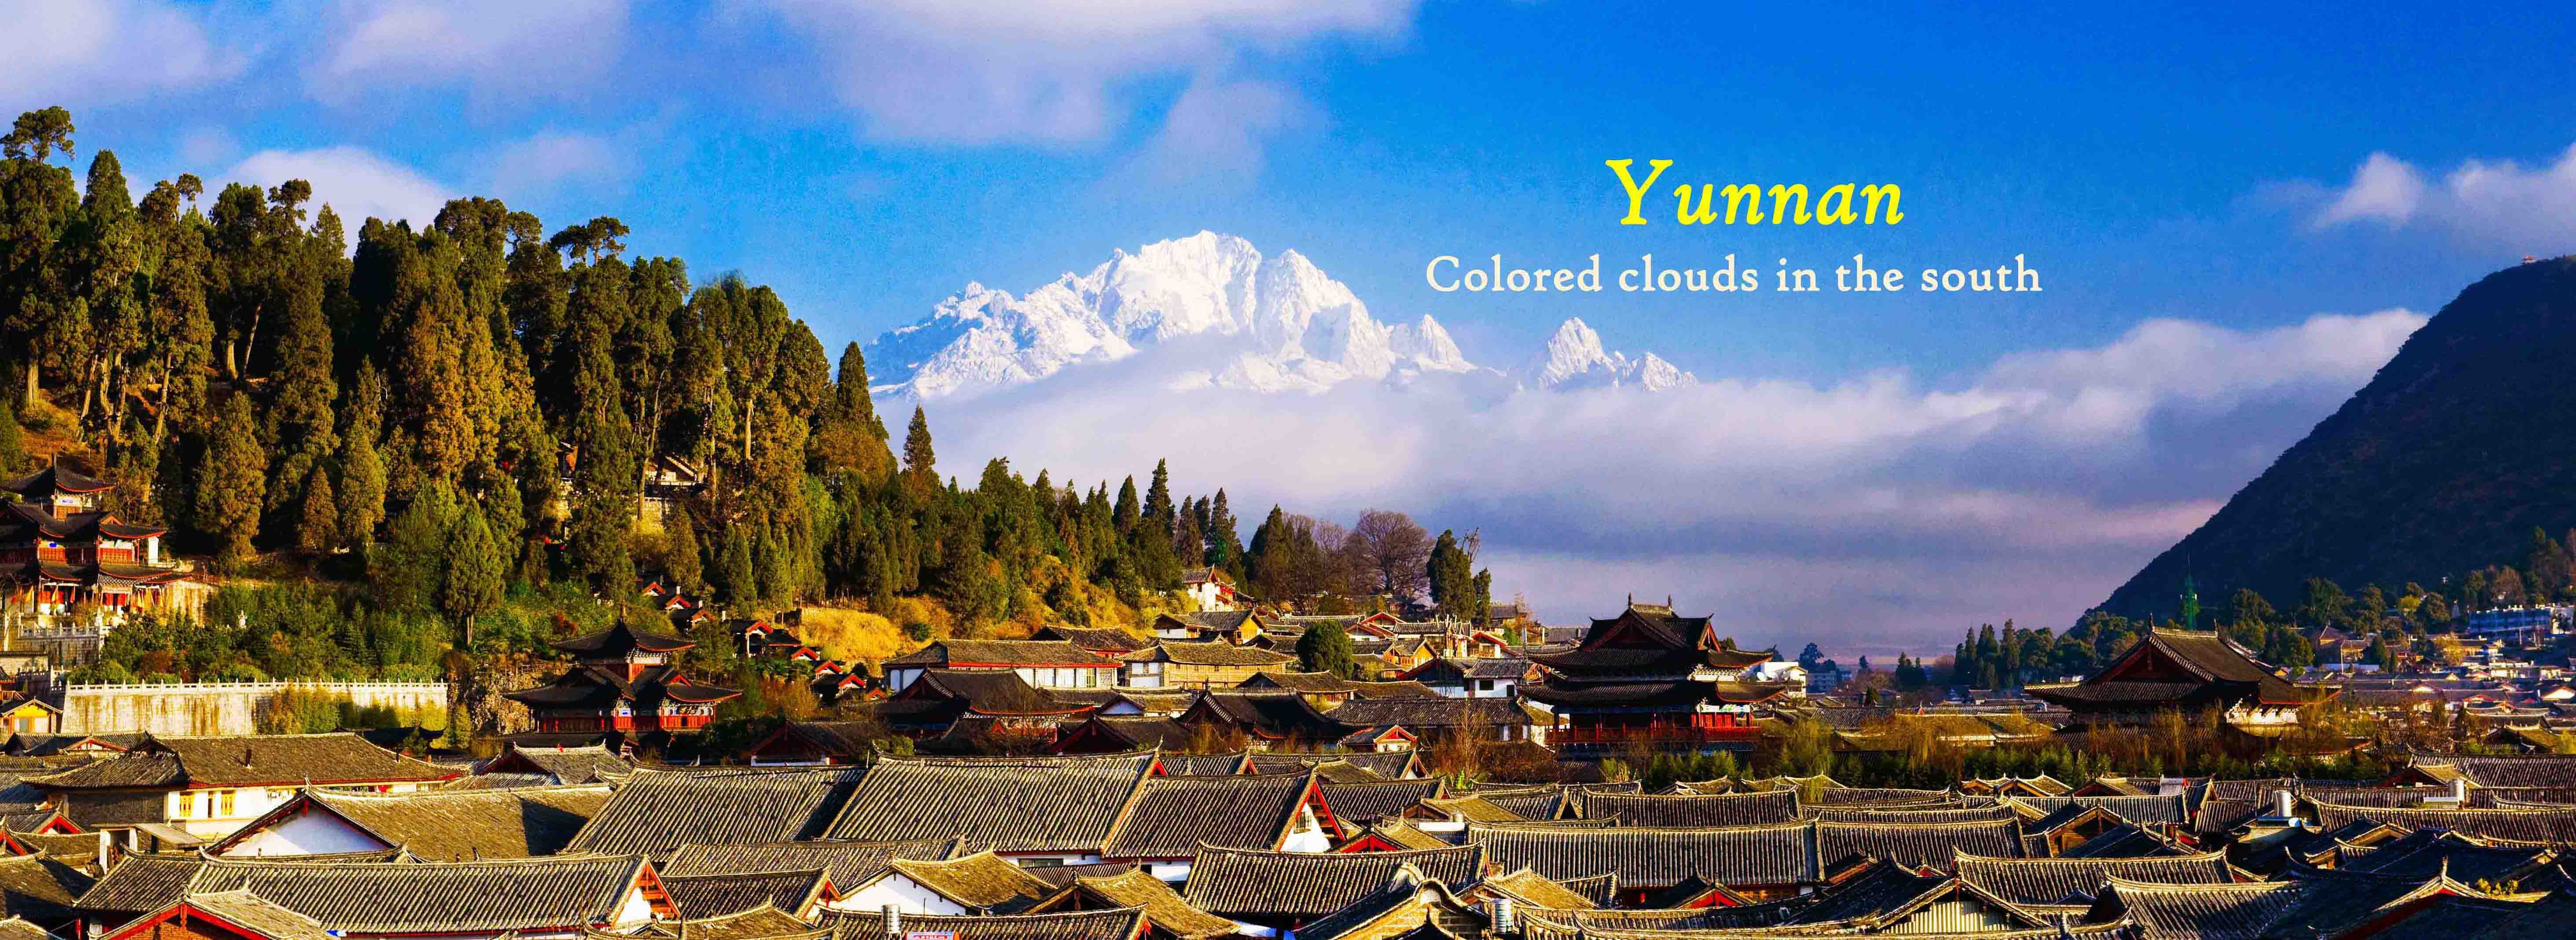 Top 9 Places to Visit in Yunnan, Where to Go in Yunnan